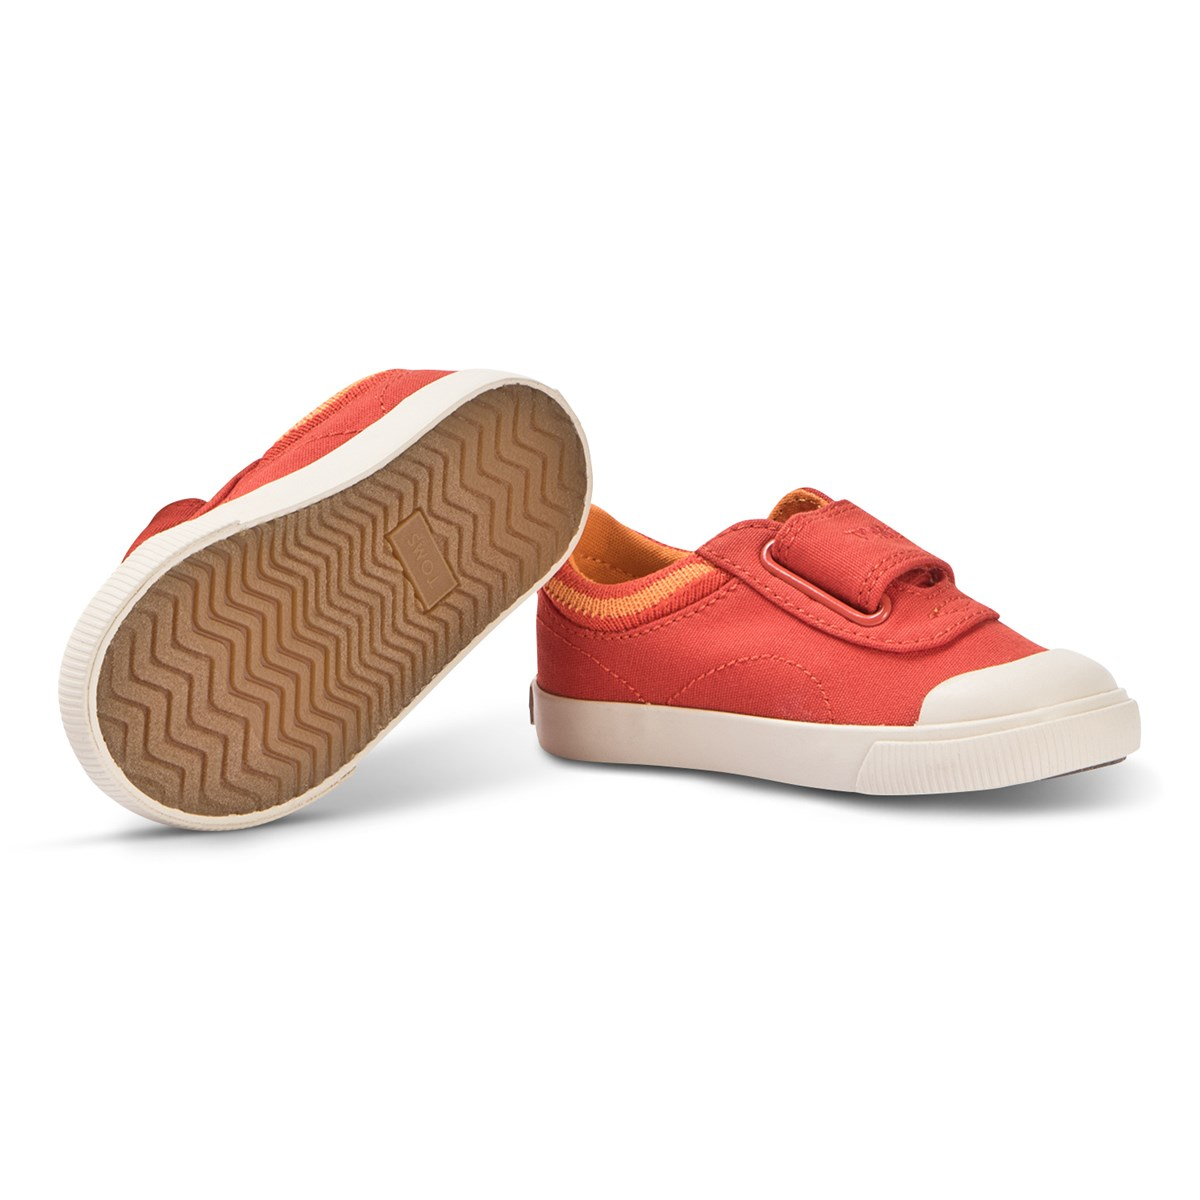 48ff56d380f Toms - Red Elmo Velcro Doheny Trainers - Babyshop.com